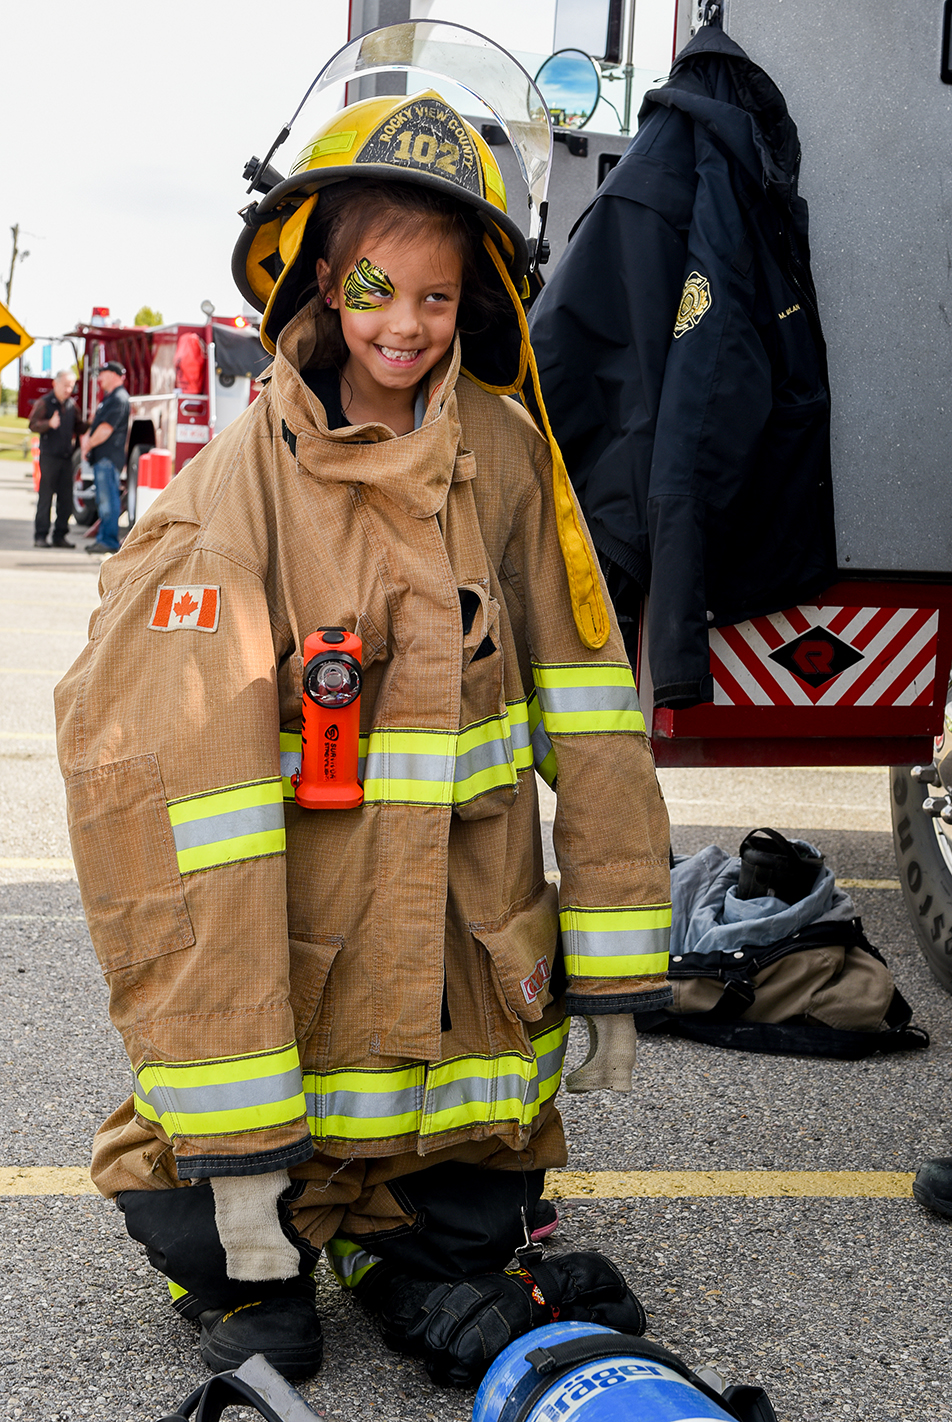 six-year-old Gabriella Vanenk tries on a Rocky View County Fire and Rescue fireman's uniform at the Springbank Old Tyme Fall Fair on Saturday, Sept. 10, 2016. There was a climbing wall, face painting and lots of other activities to ensure a good time for kids. (Photo by Jeremy Ash/The Press)